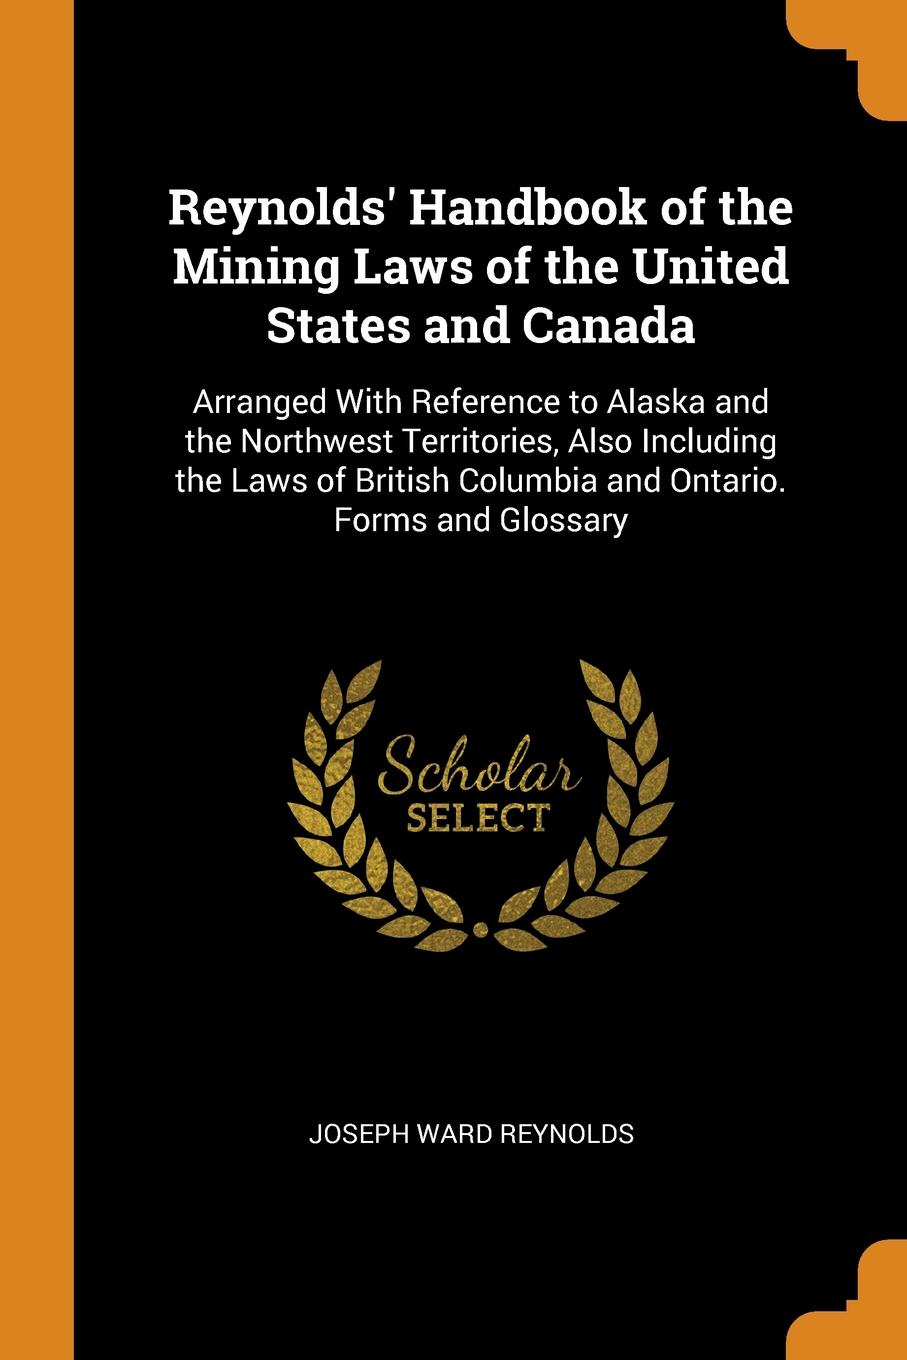 Reynolds. Handbook of the Mining Laws of the United States and Canada. Arranged With Reference to Alaska and the Northwest Territories, Also Including the Laws of British Columbia and Ontario. Forms and Glossary. Joseph Ward Reynolds